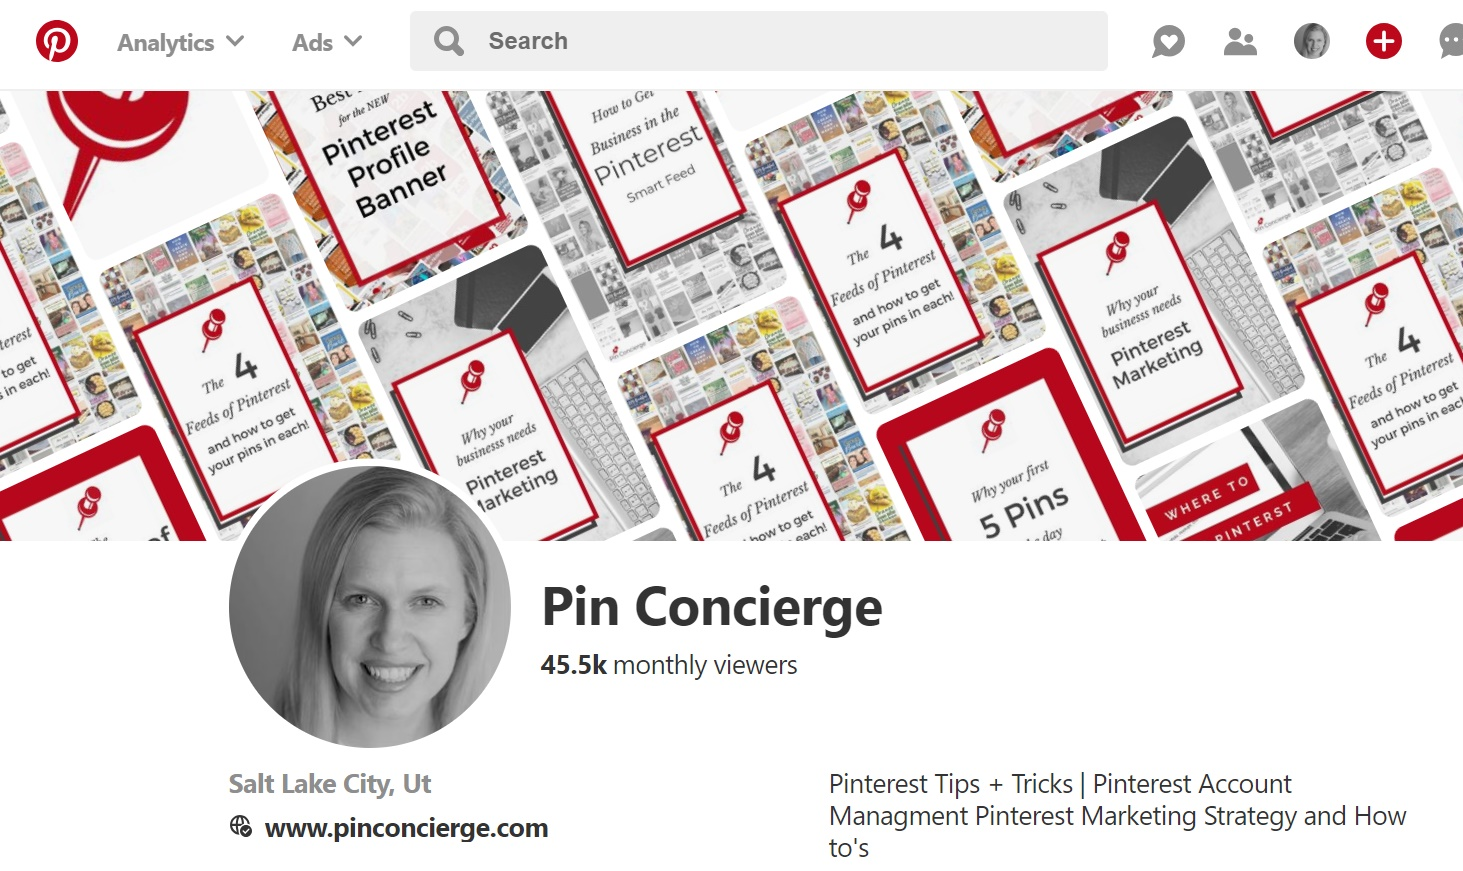 It's a Pinterest business account if the profile has the pin banner above your profile image.